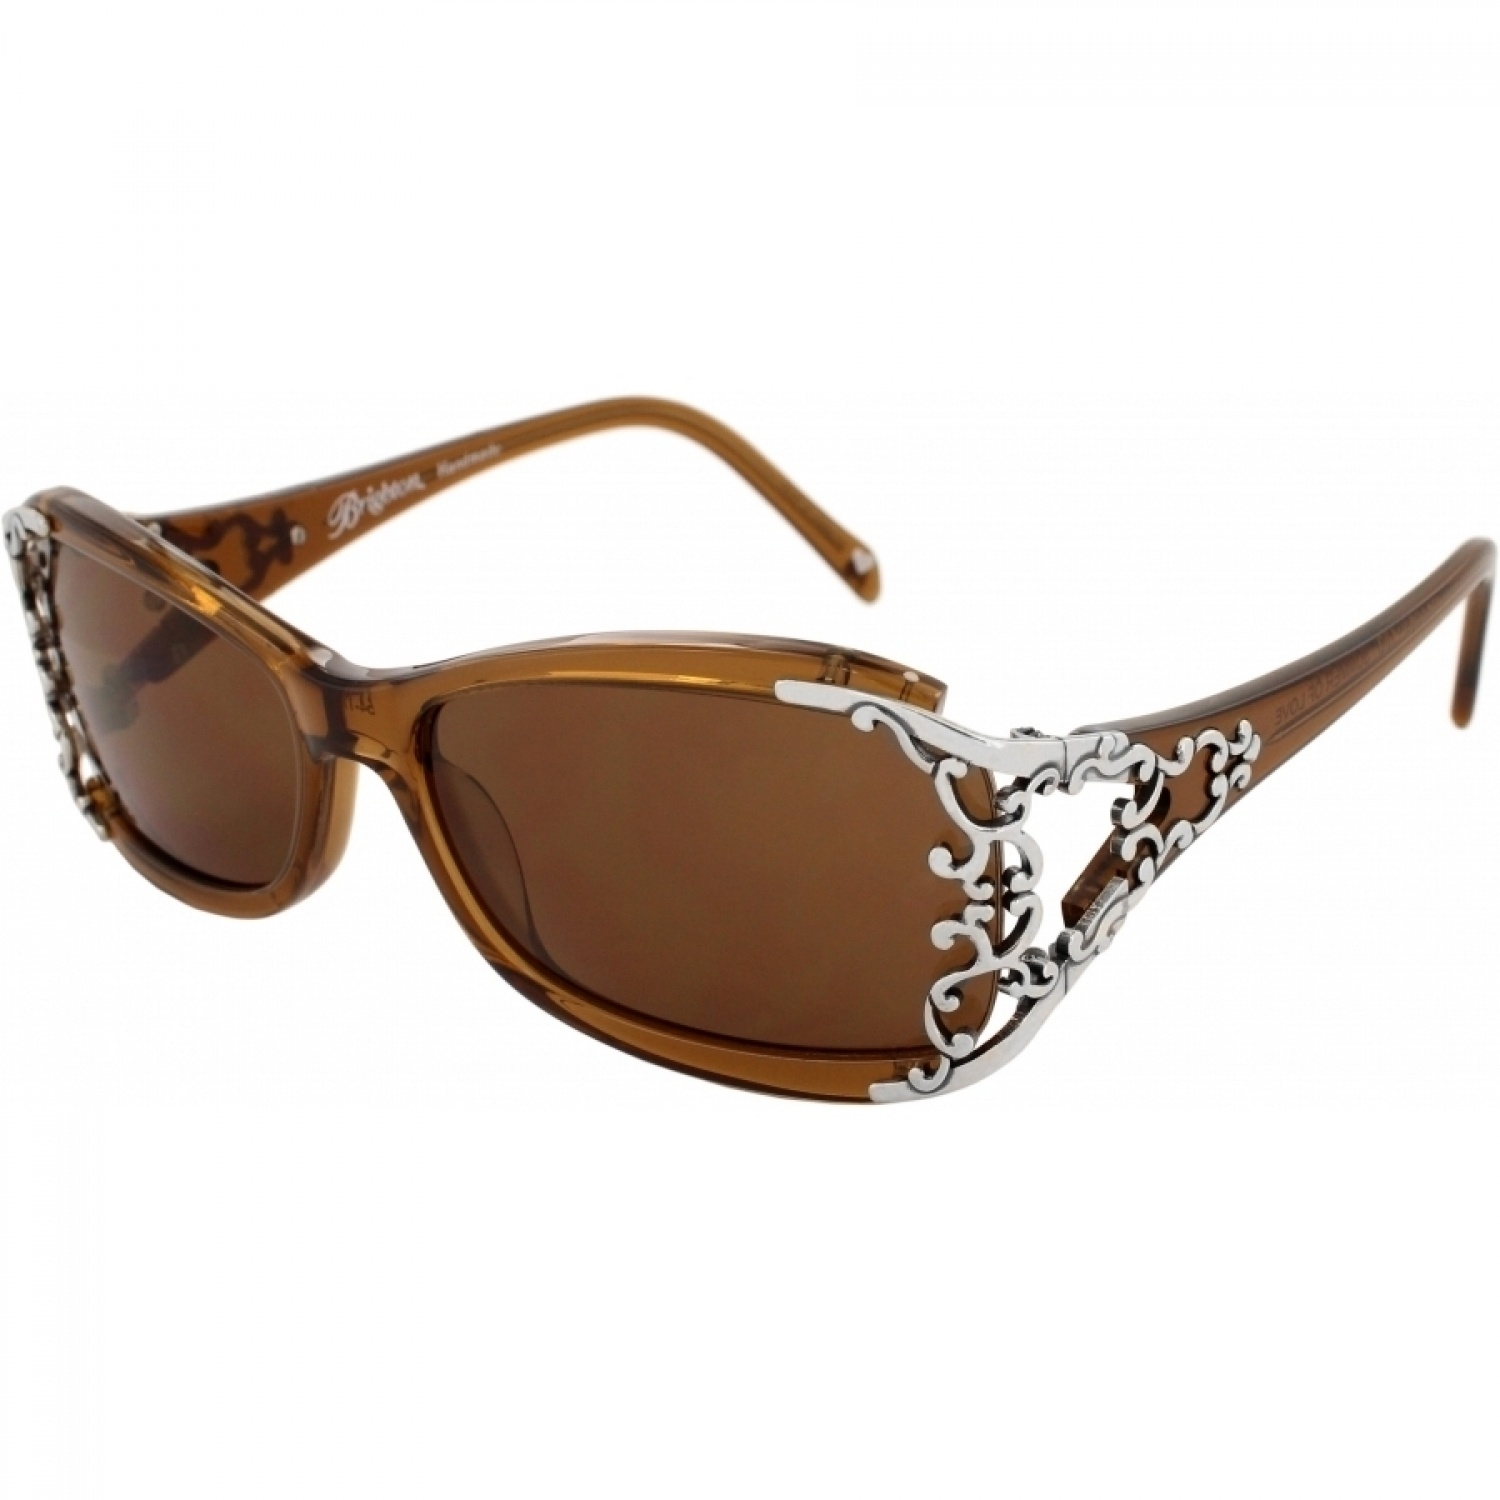 What Sunglasses are in this Summer?